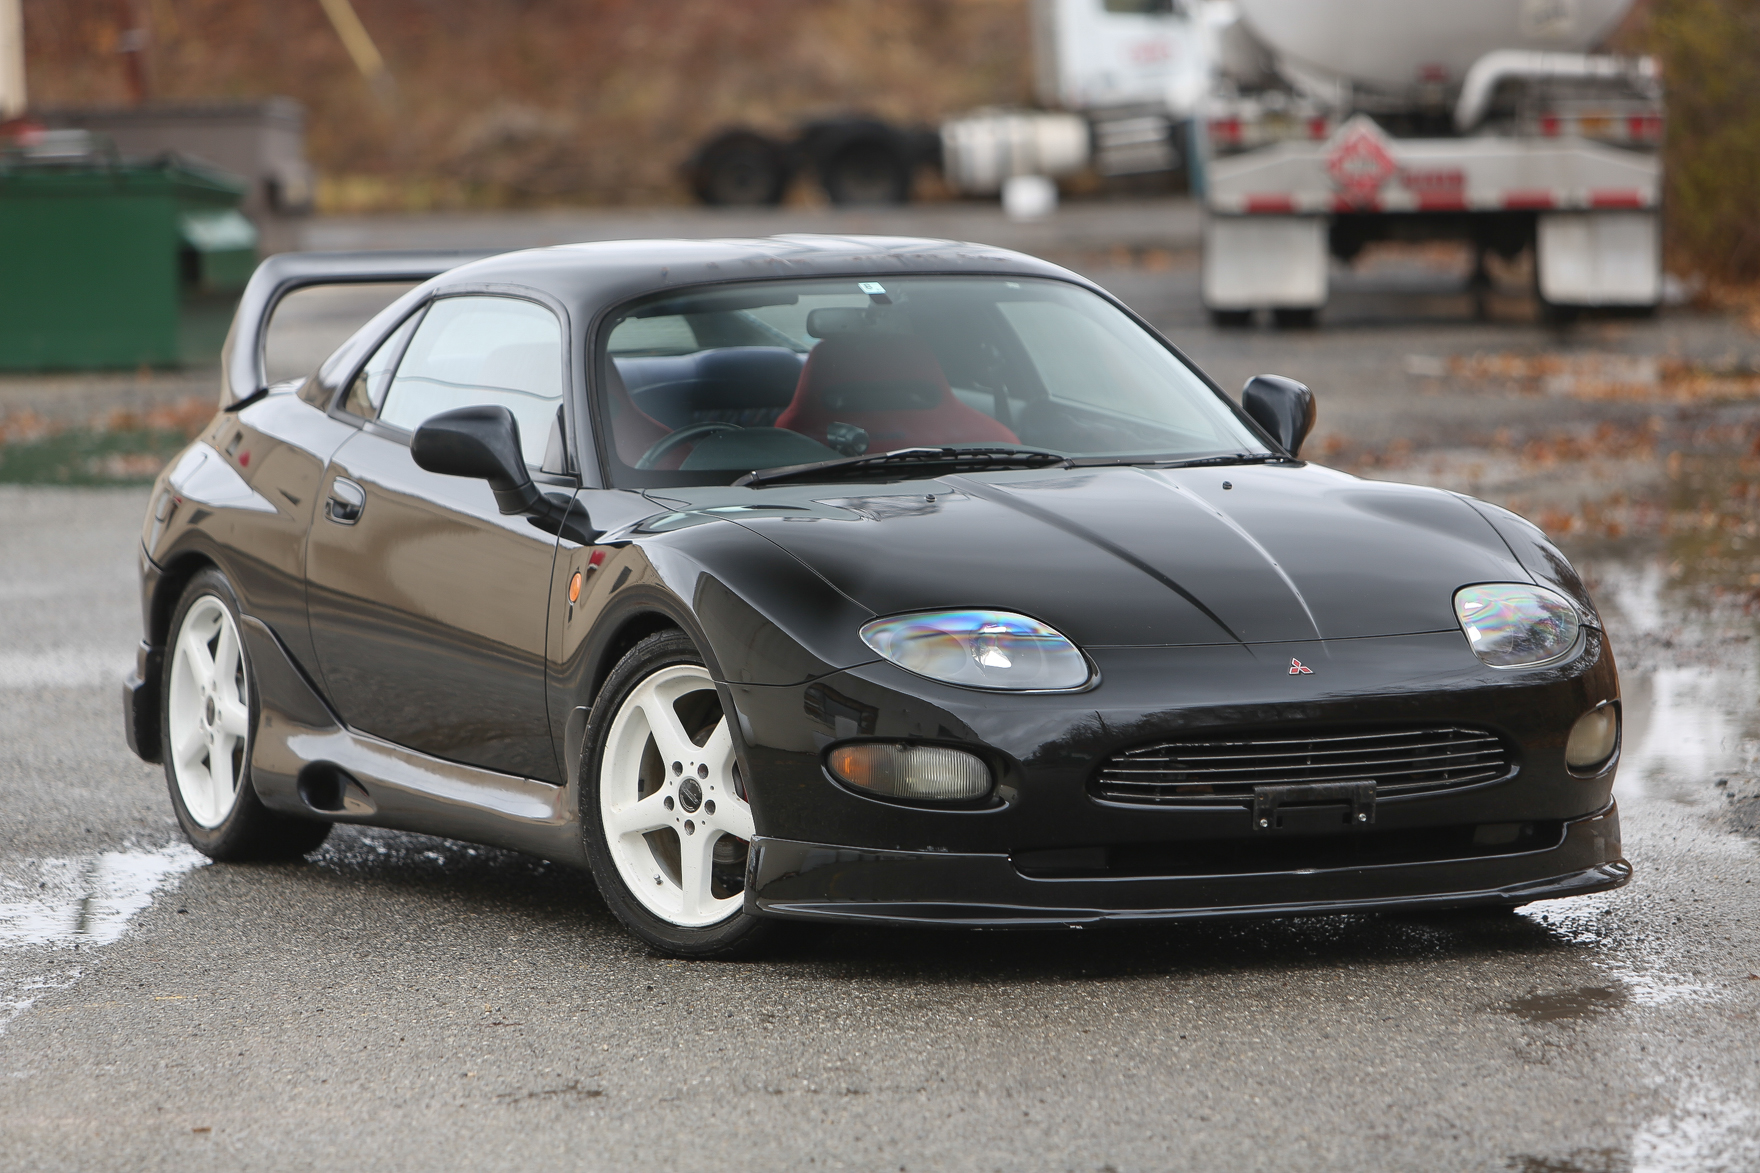 1994 Mitsubishi FTO GR - Available for $15,500